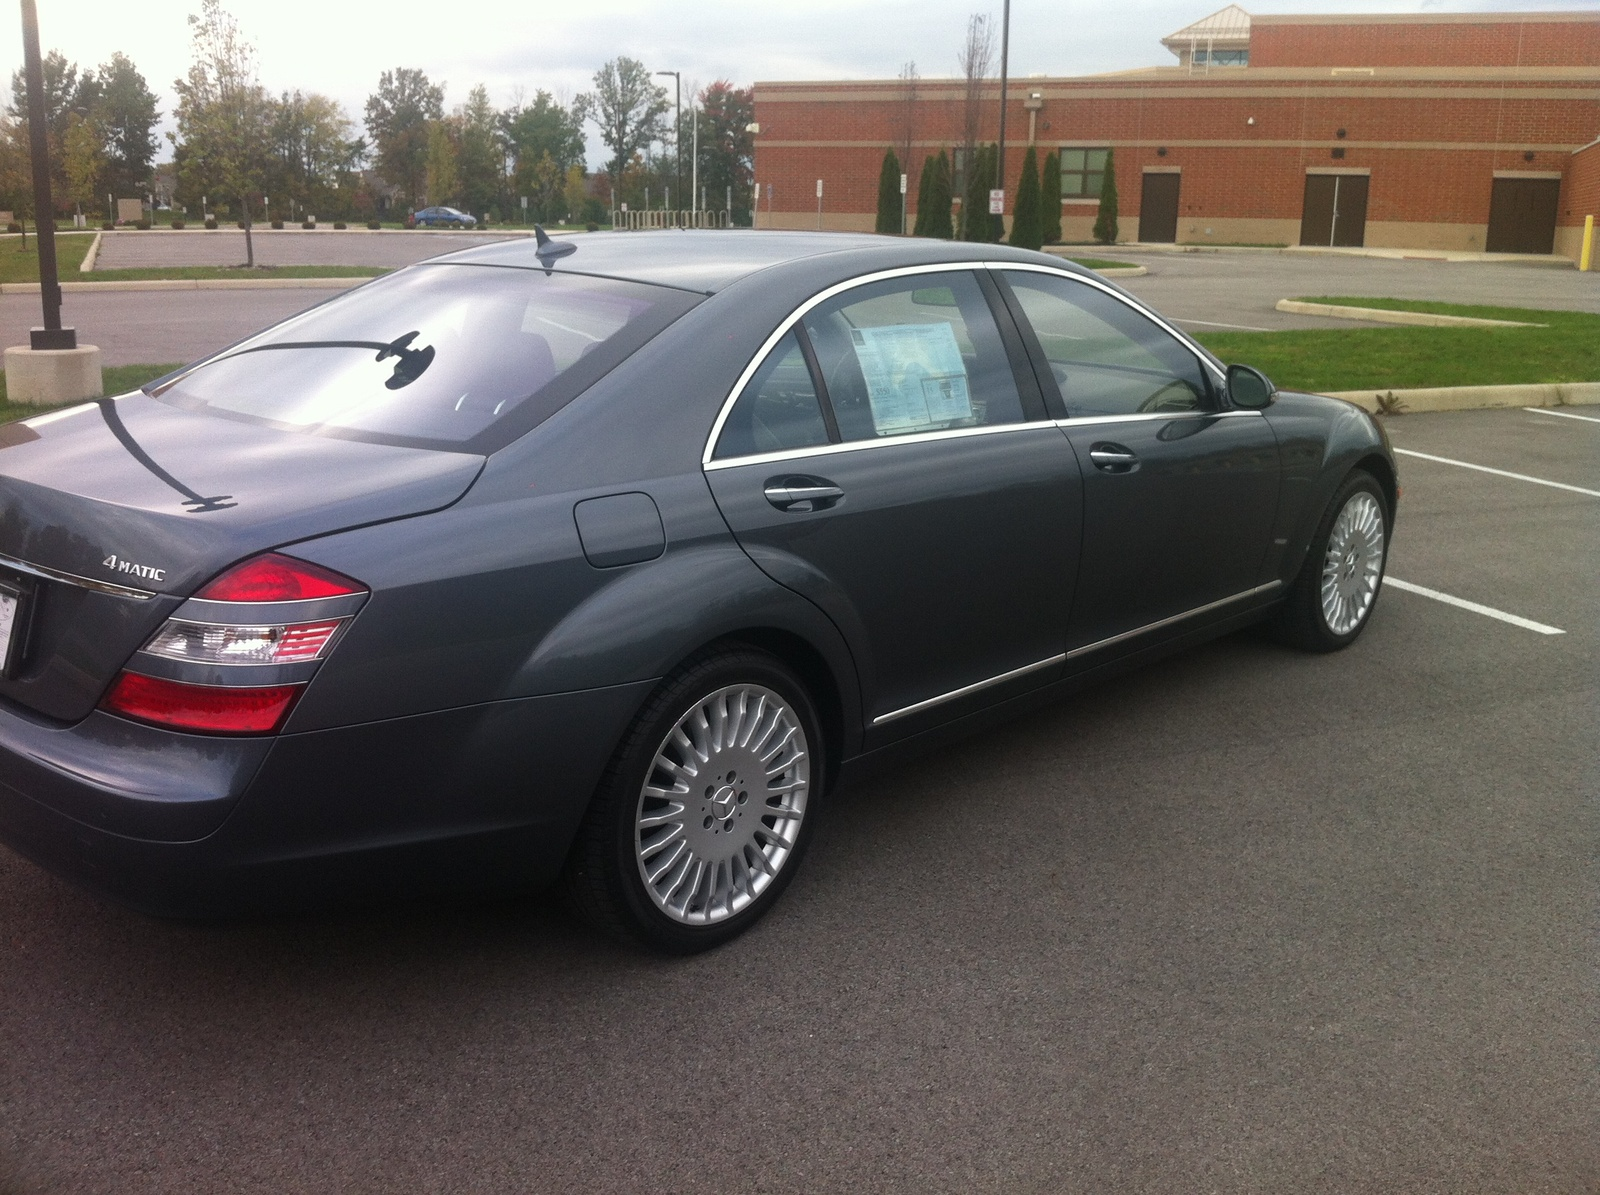 2007 mercedes benz s class pictures cargurus for 2009 mercedes benz s550 price